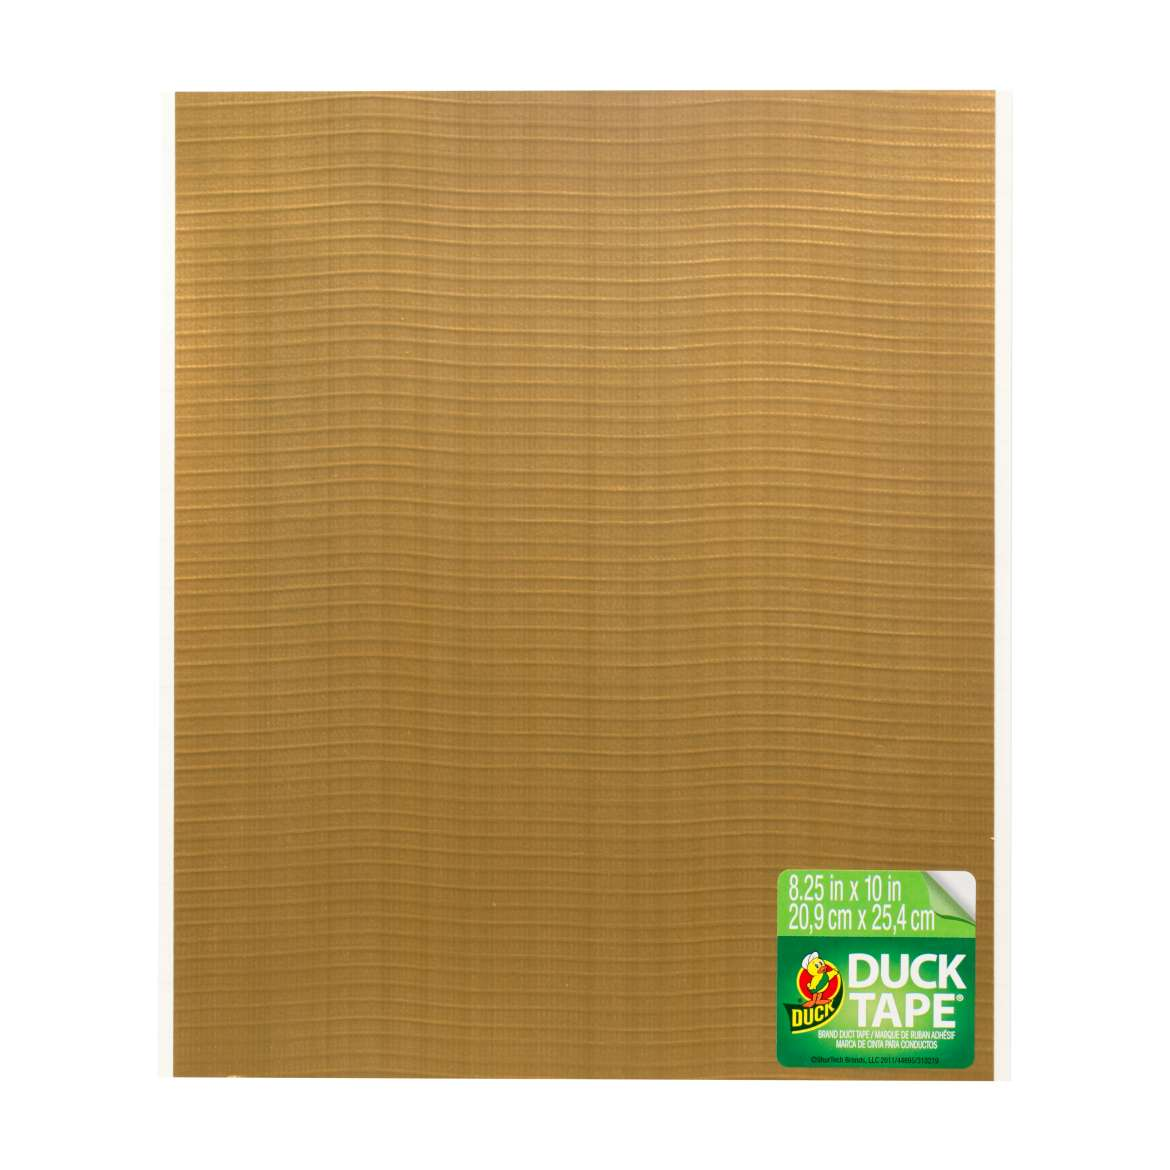 Color Duck Tape® Sheets - Gold, 6 pk, 8.25 in. x 10 in. Image